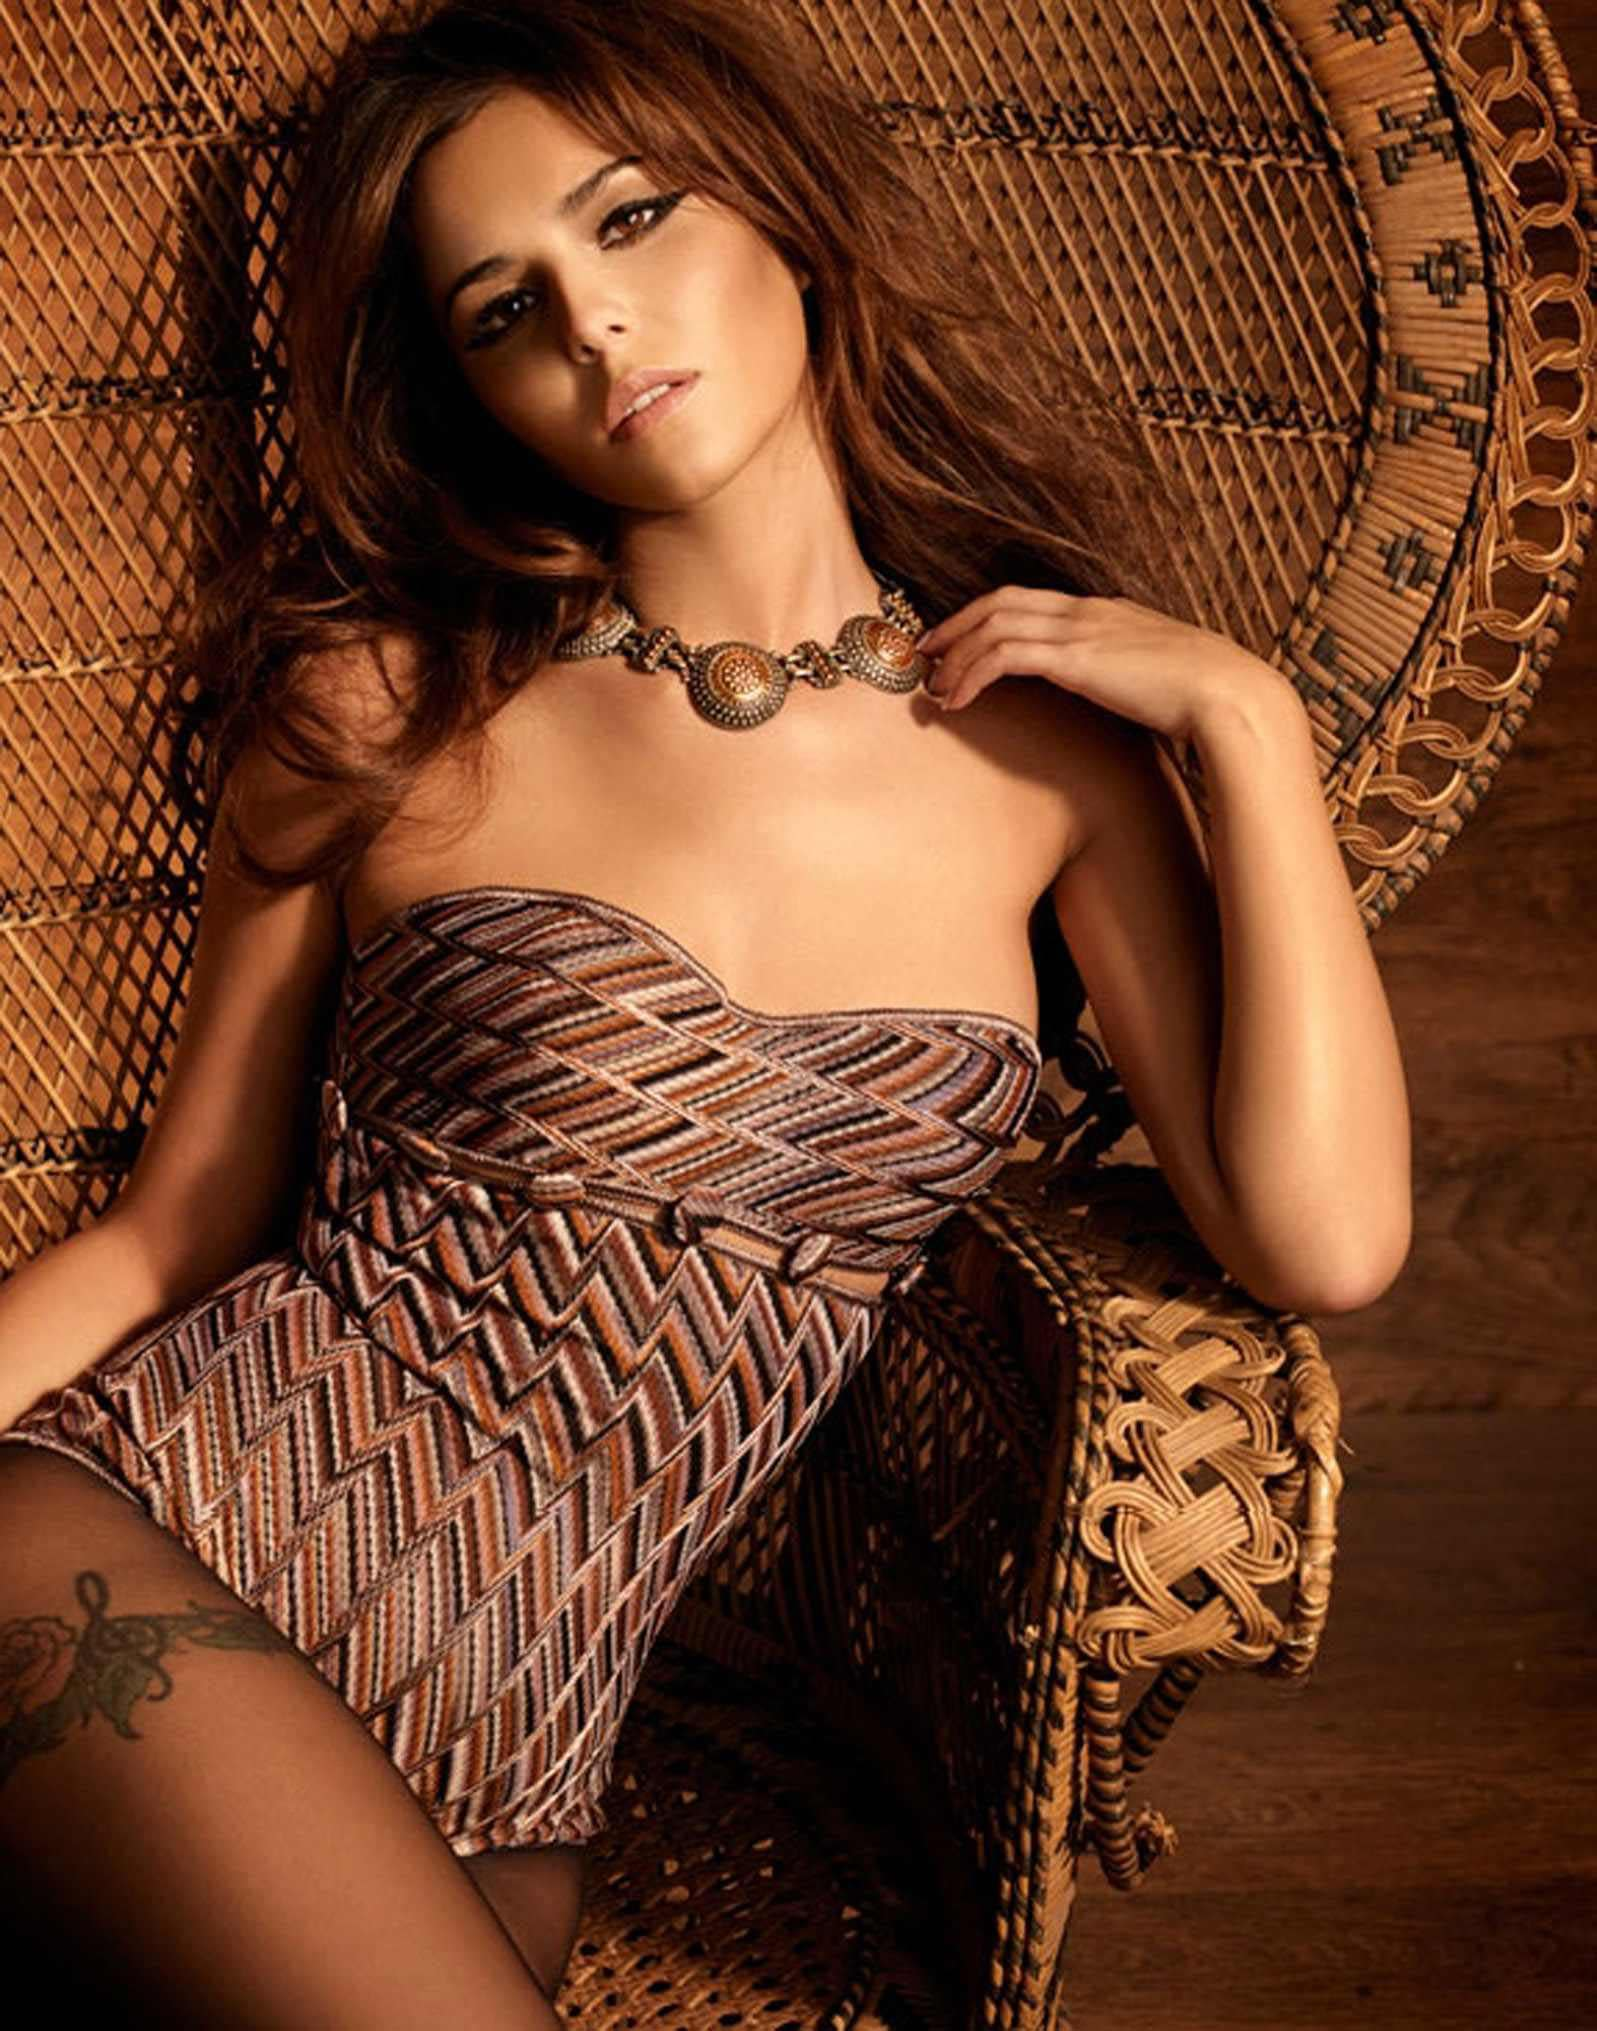 Cheryl Cole Photoshoot Pics